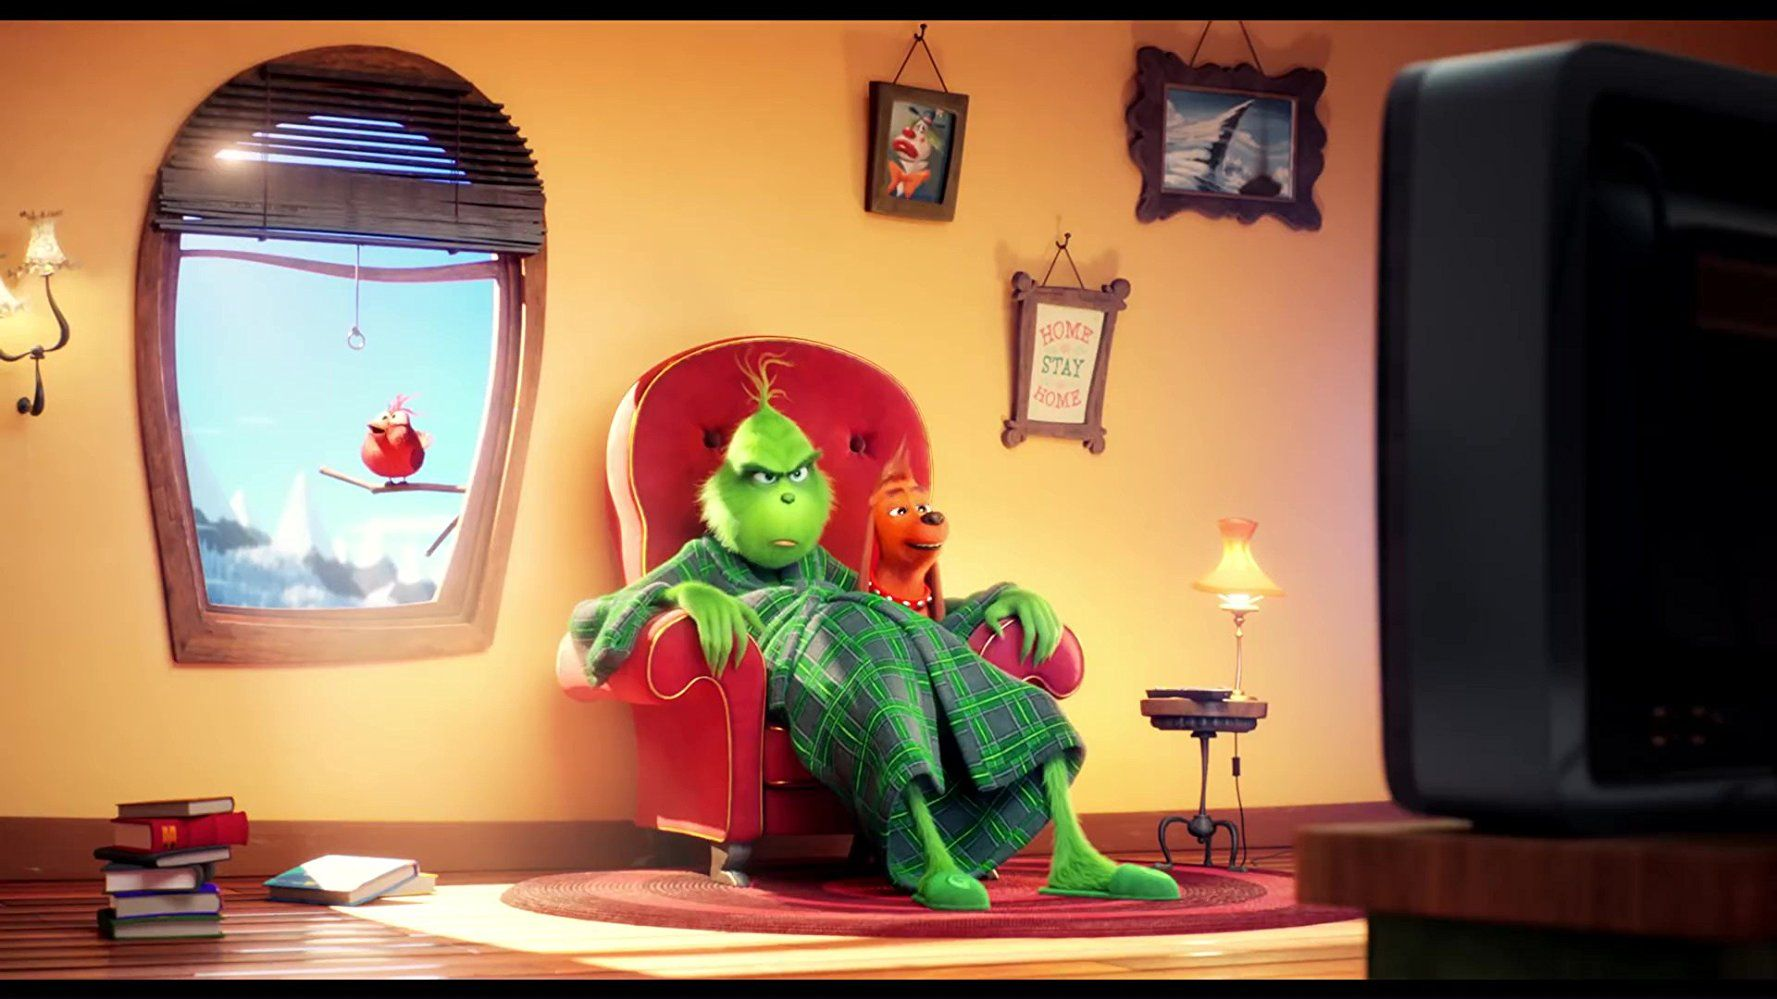 First Look On The New How The Grinch Stle Christmas 2020 The Grinch (2018)   Photo Gallery   IMDb in 2020 | The grinch full